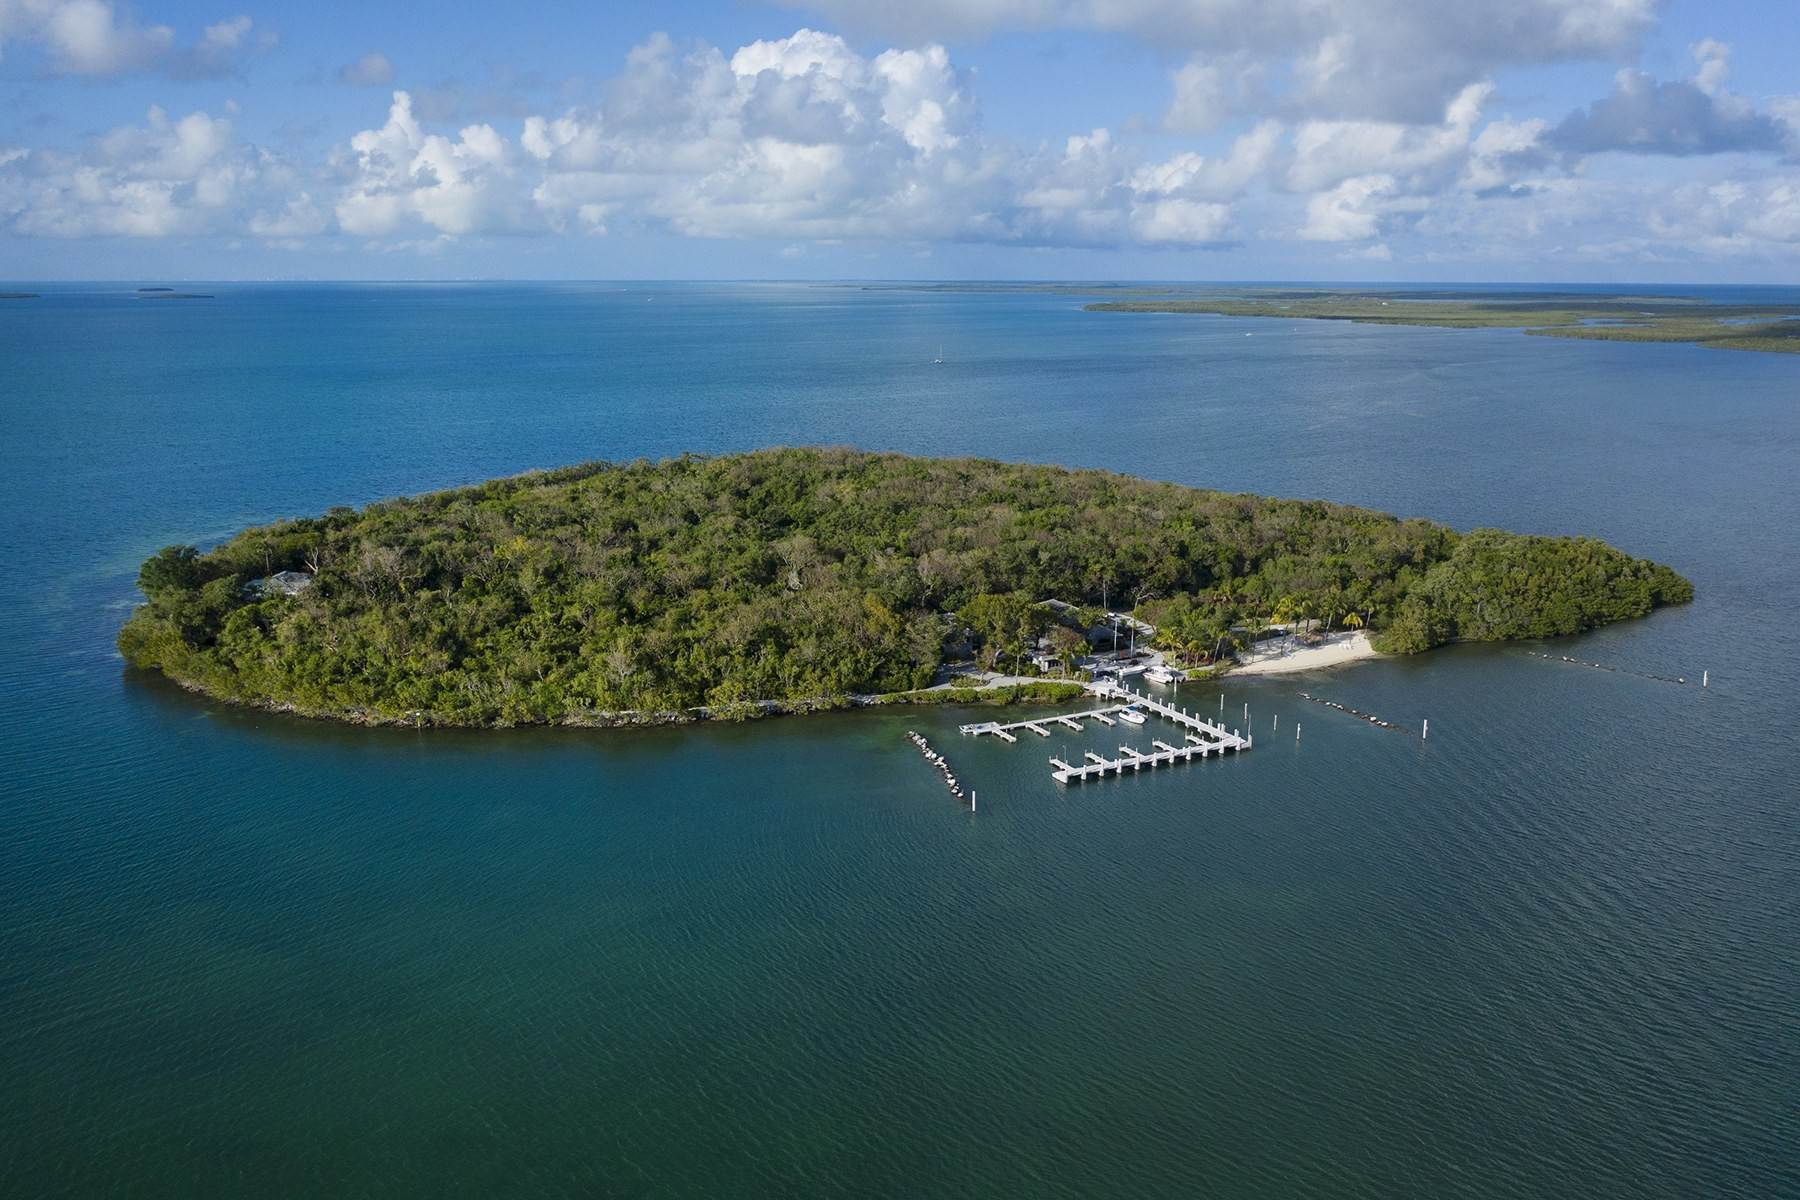 3. Property for Sale at 10 Cannon Point, Key Largo, FL 10 Cannon Point Key Largo, Florida 33037 United States